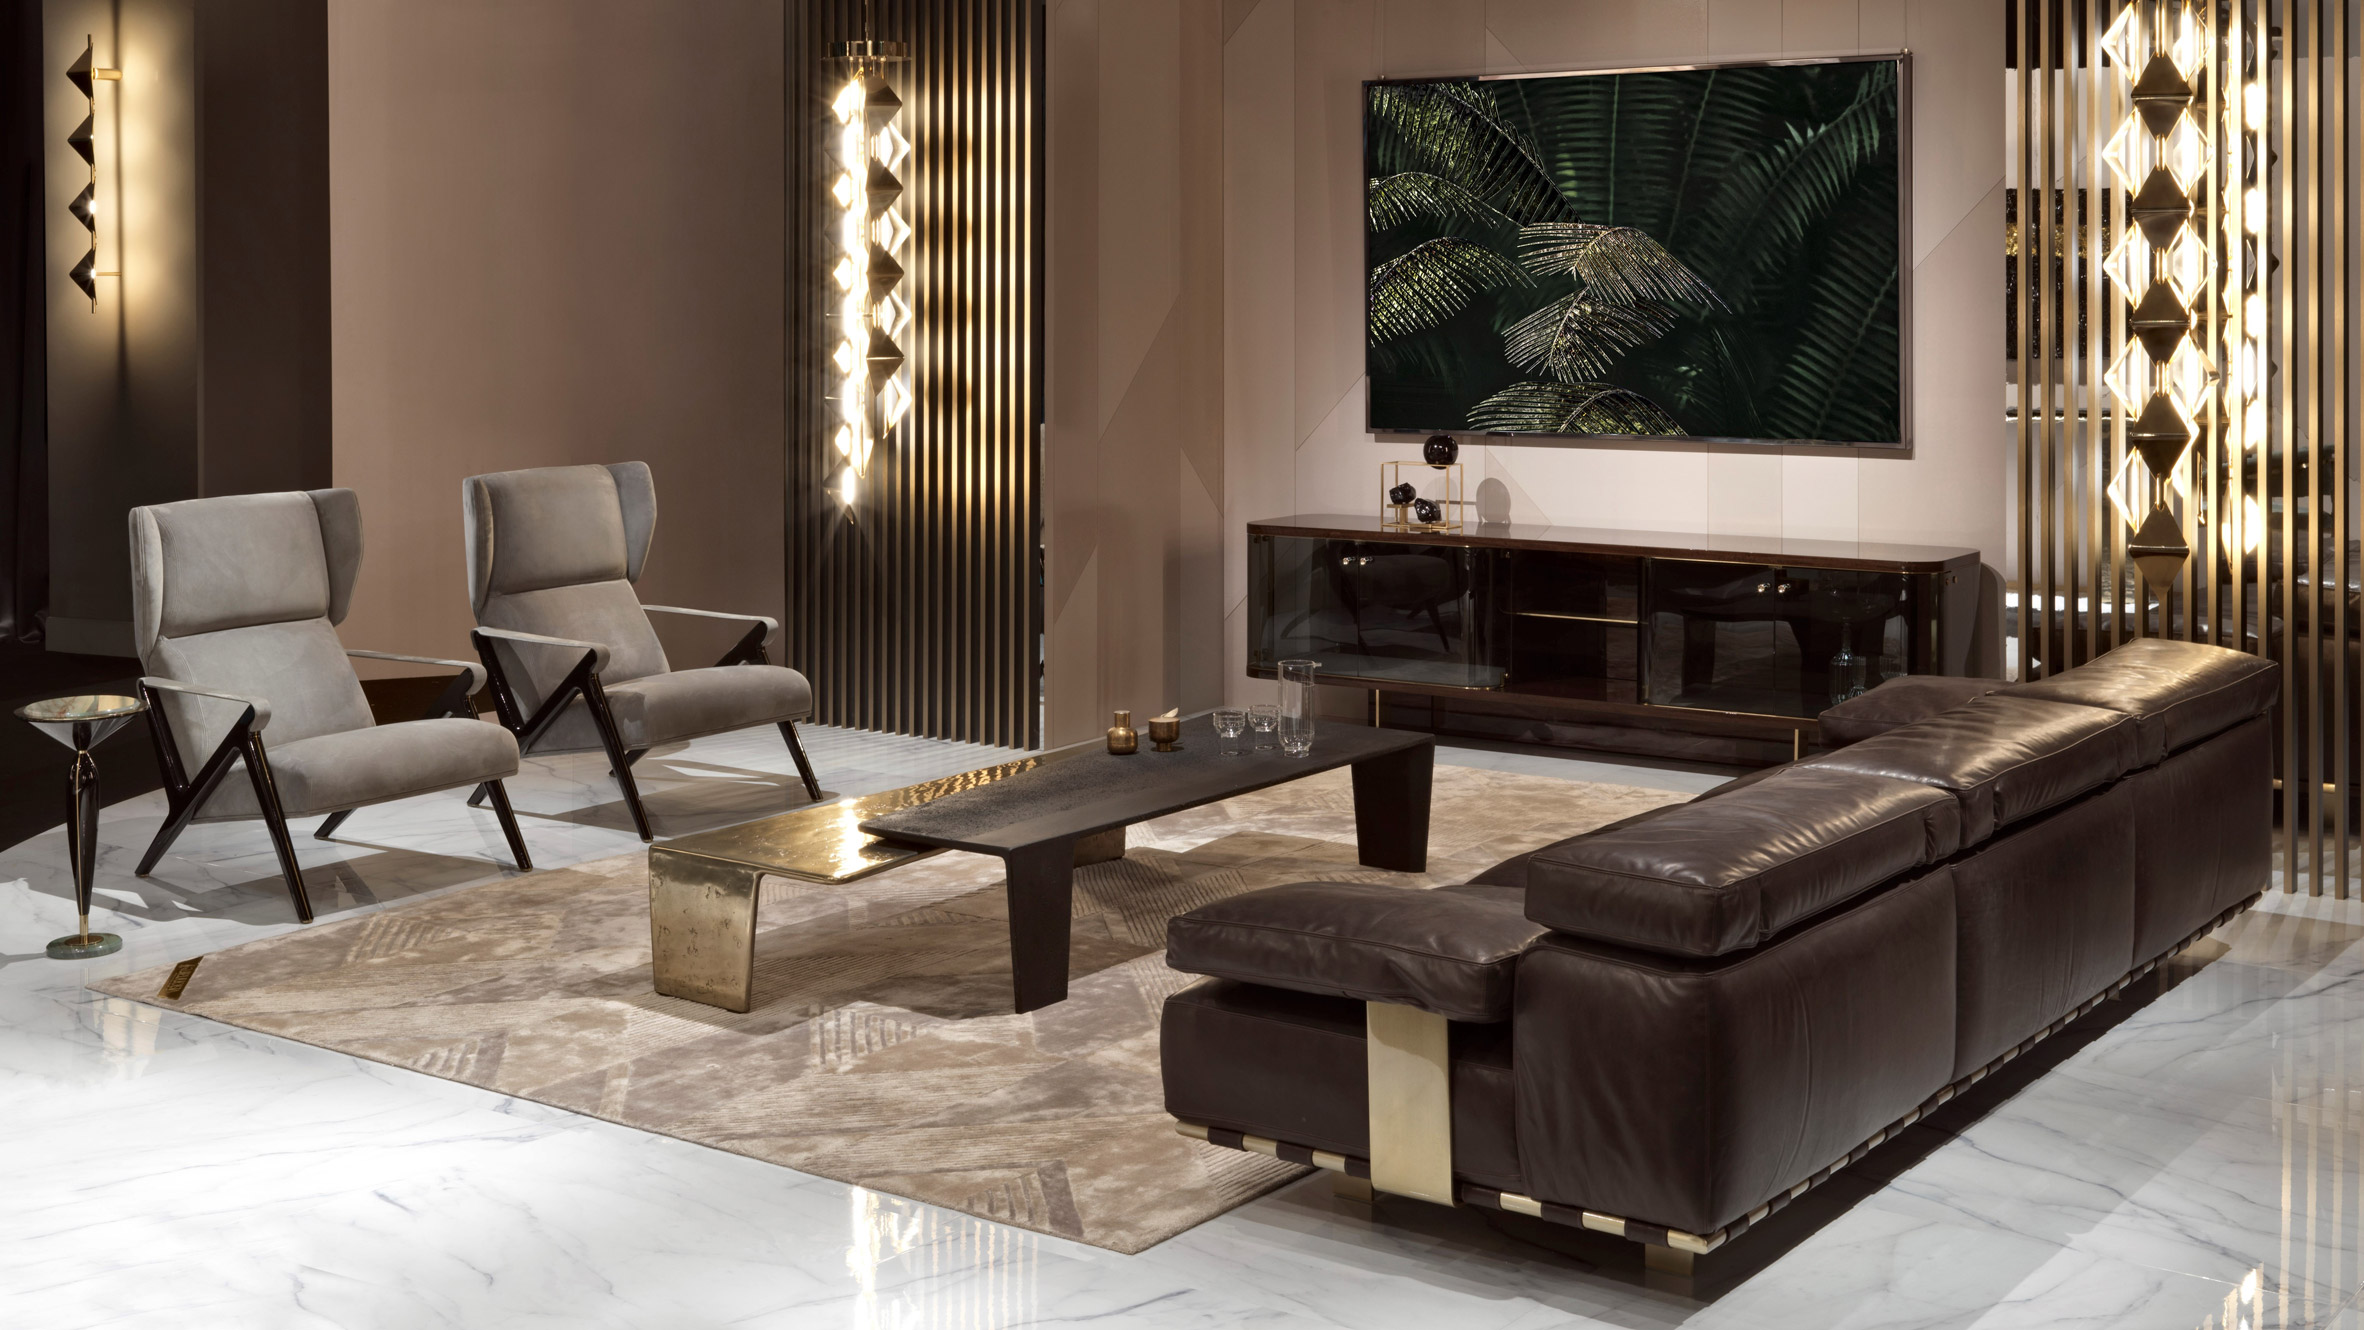 Art meets design in Visionnaire's latest furniture collection Beauty